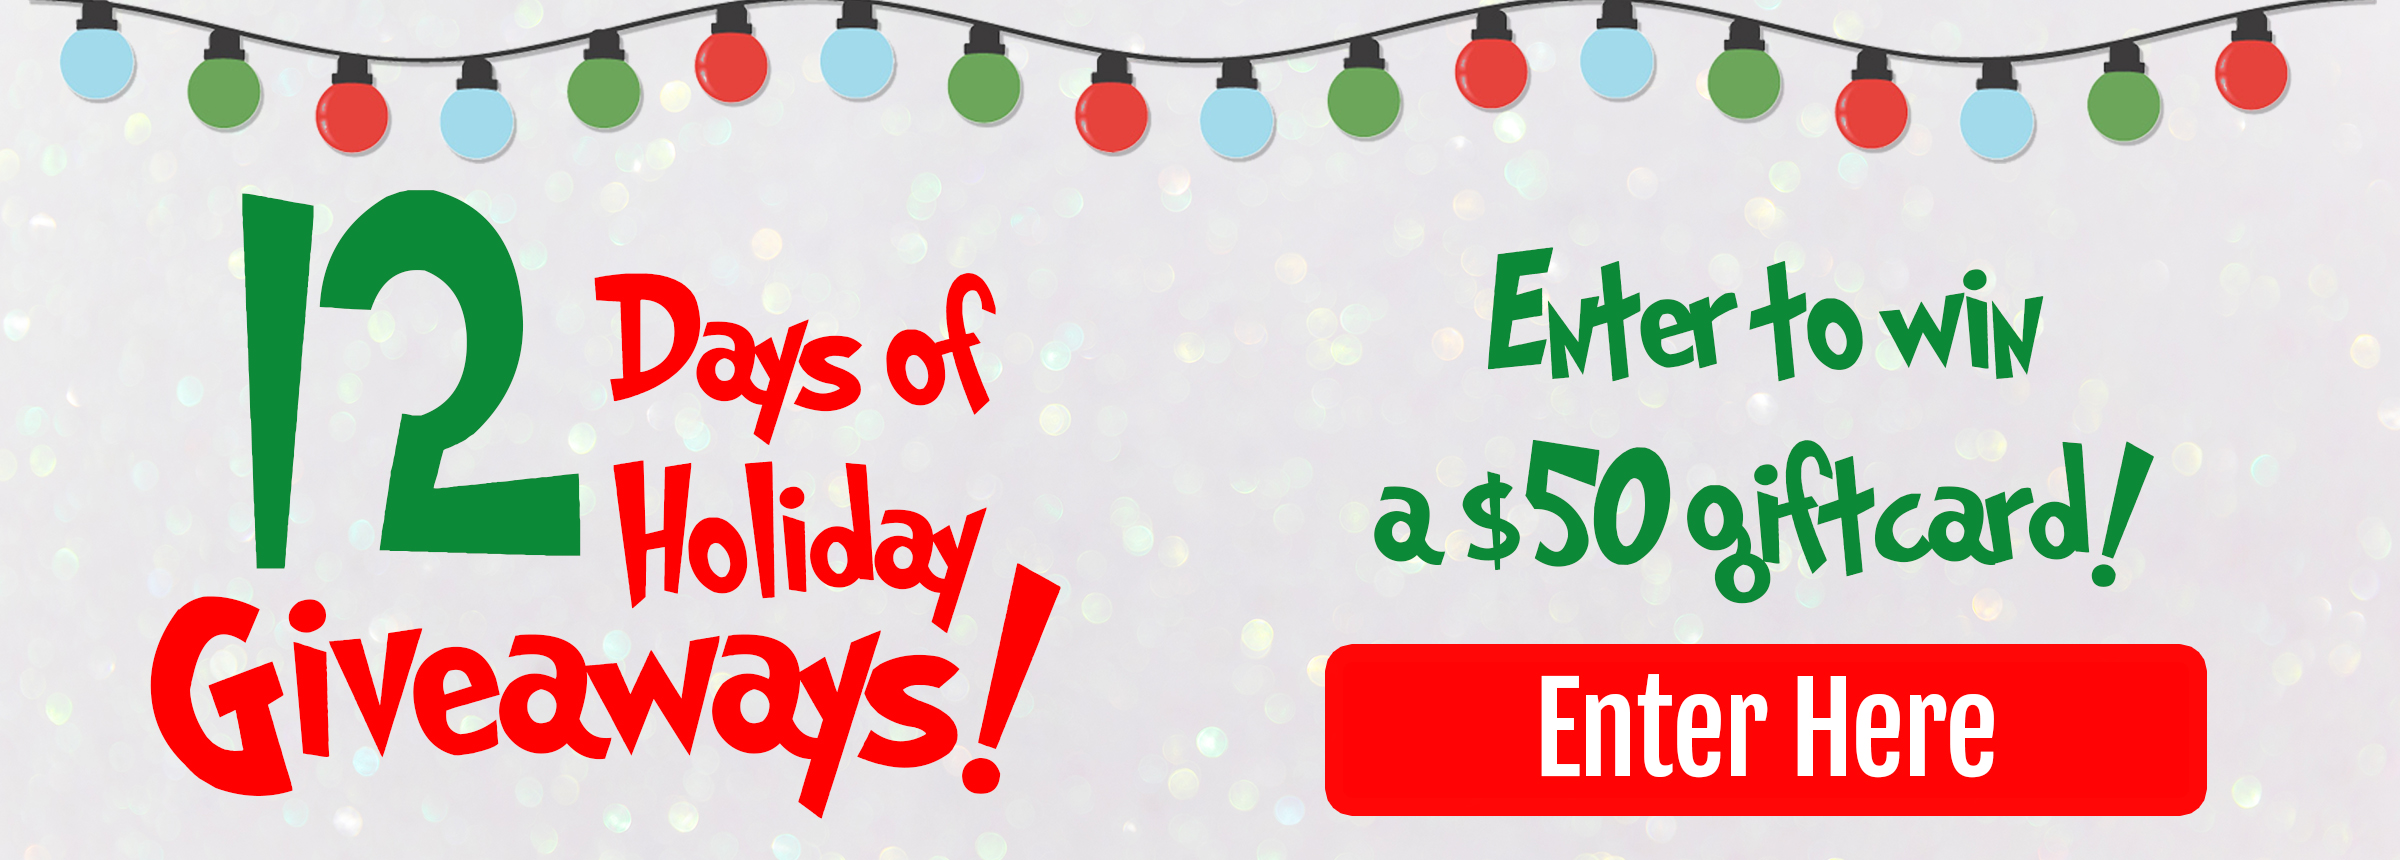 2018 12 Days of Holiday Giveaways Hero Image 2400x860